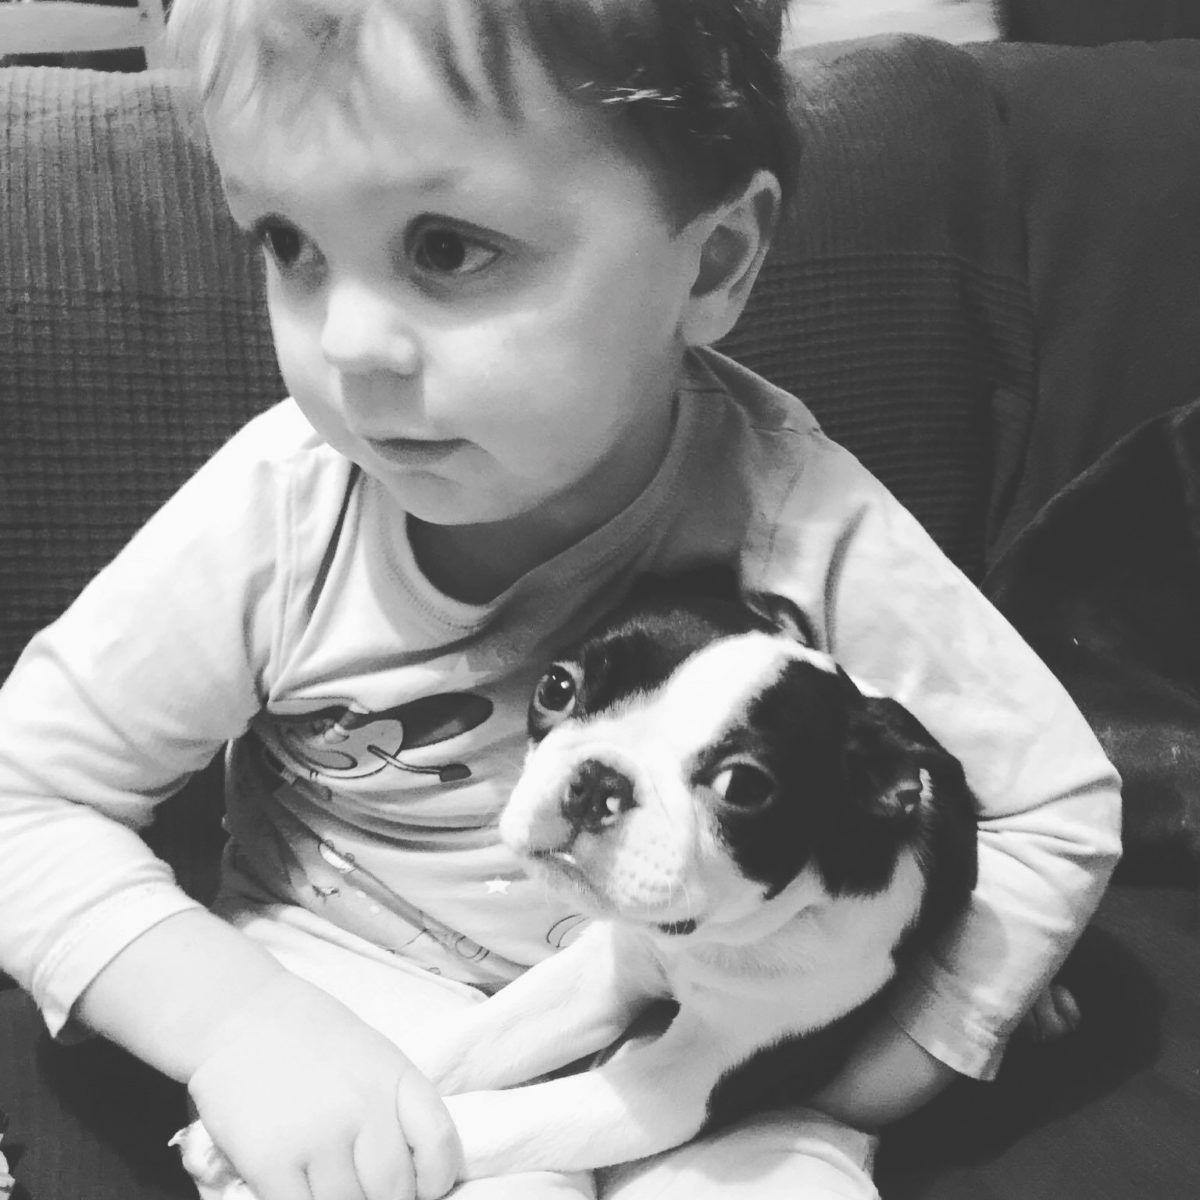 A young boy and a Boston Terrier hoping to be a vet.